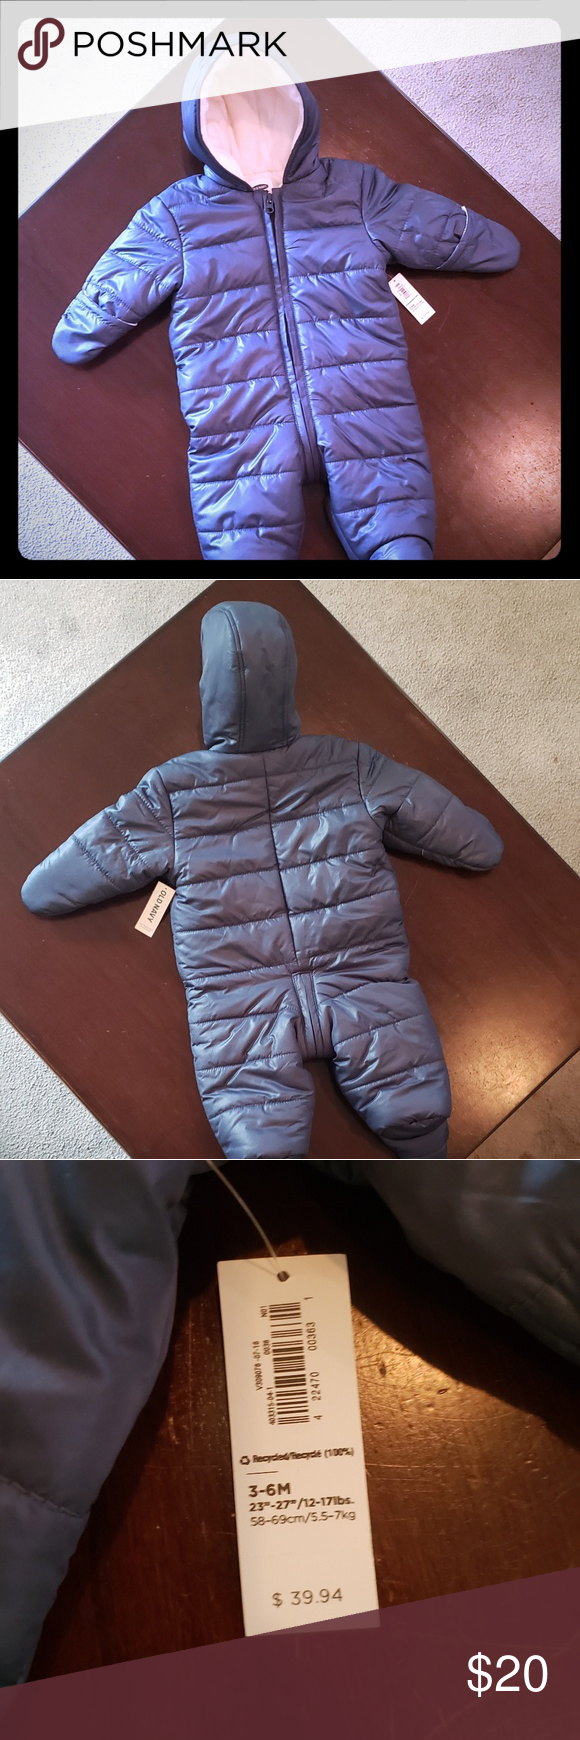 67b76d37aa65 Old Navy Snow Suit New insulated snow suit Old Navy Jackets   Coats ...